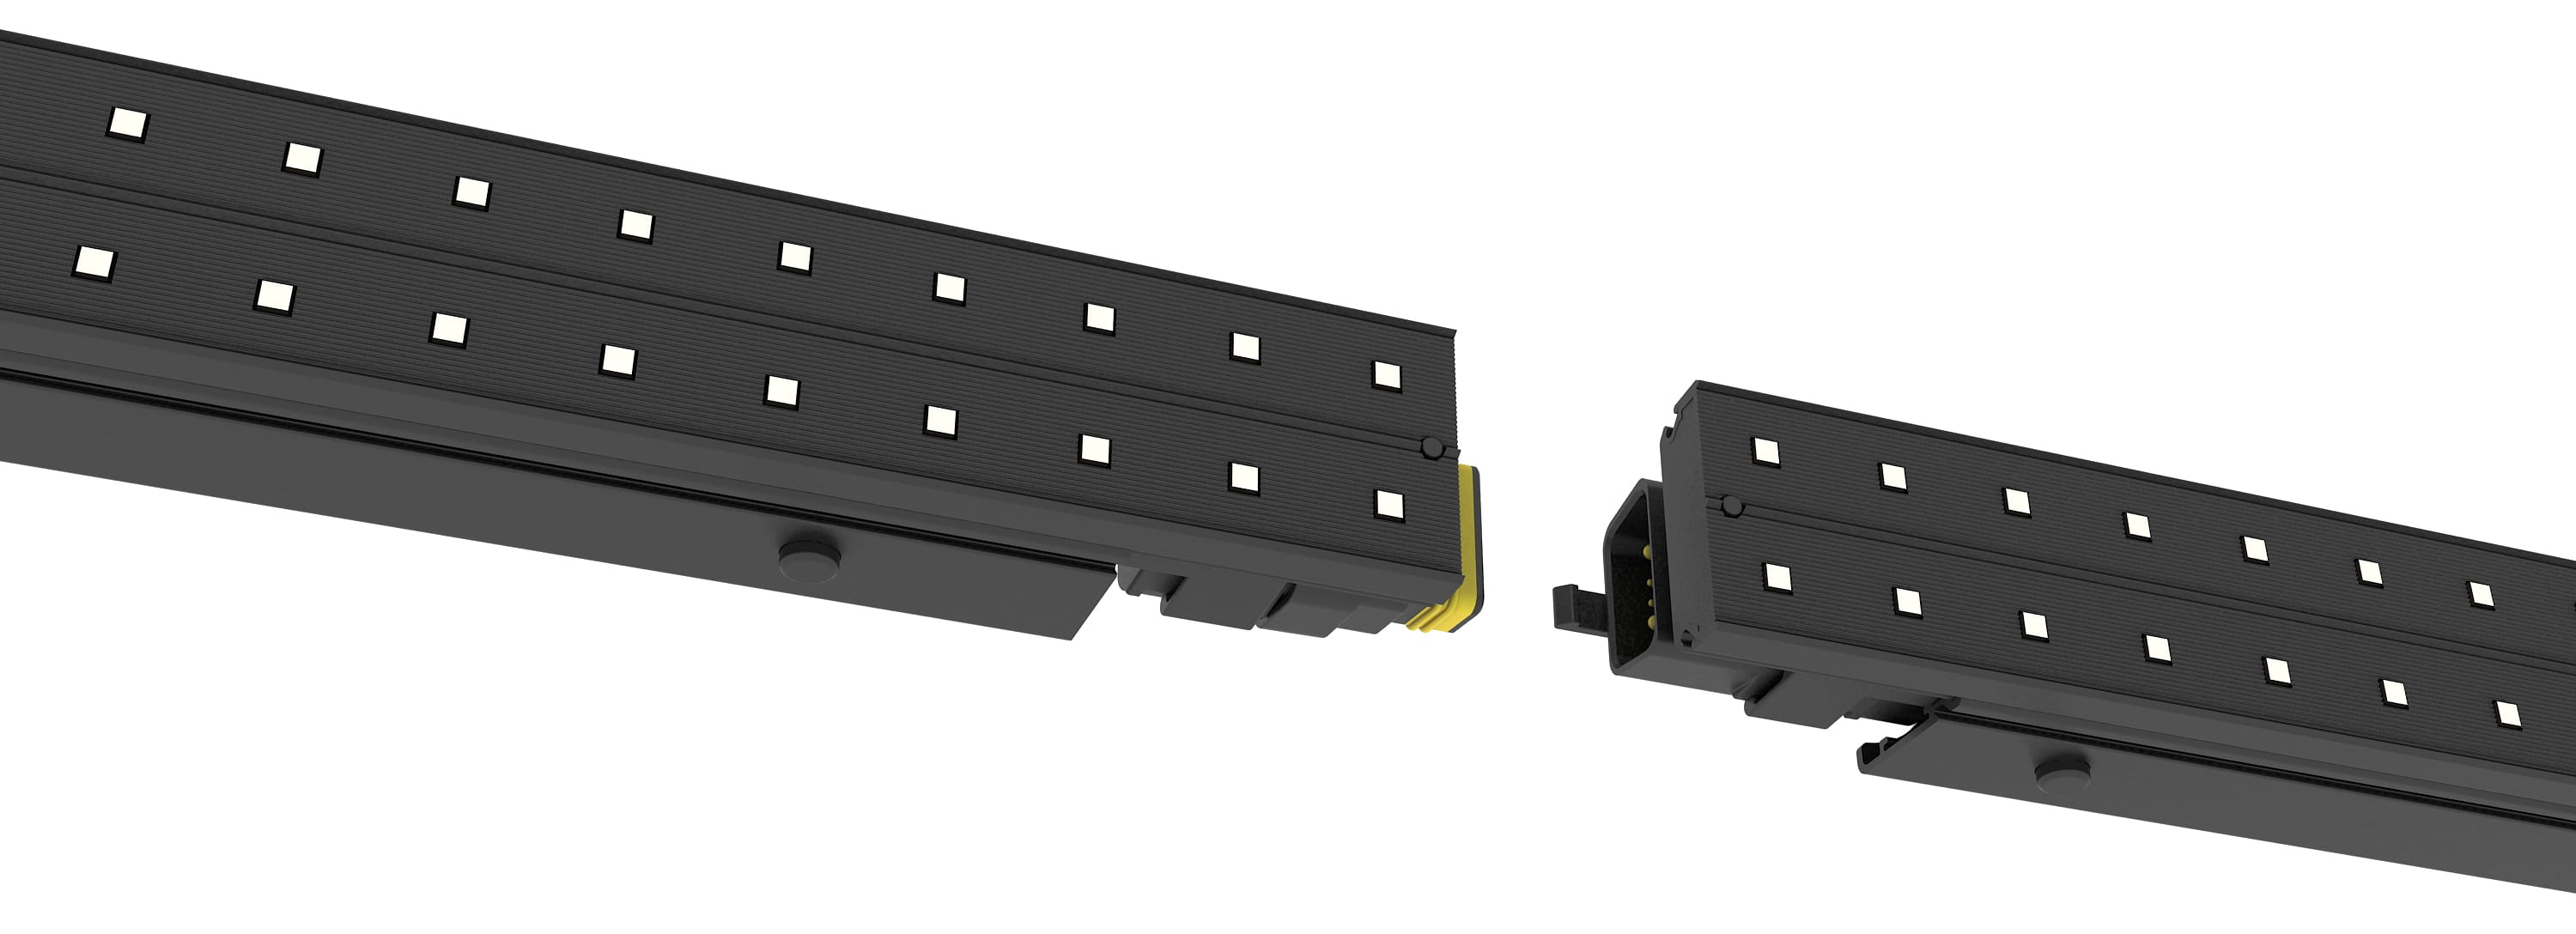 led strip video snap-fits